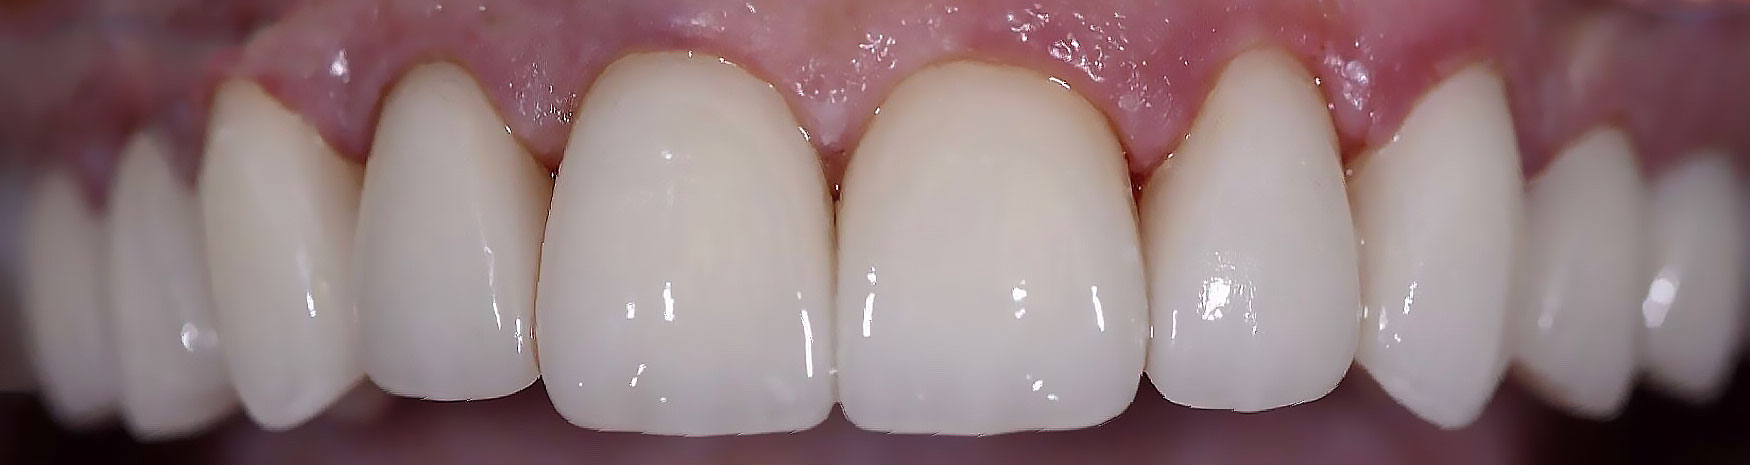 dental restoration case after